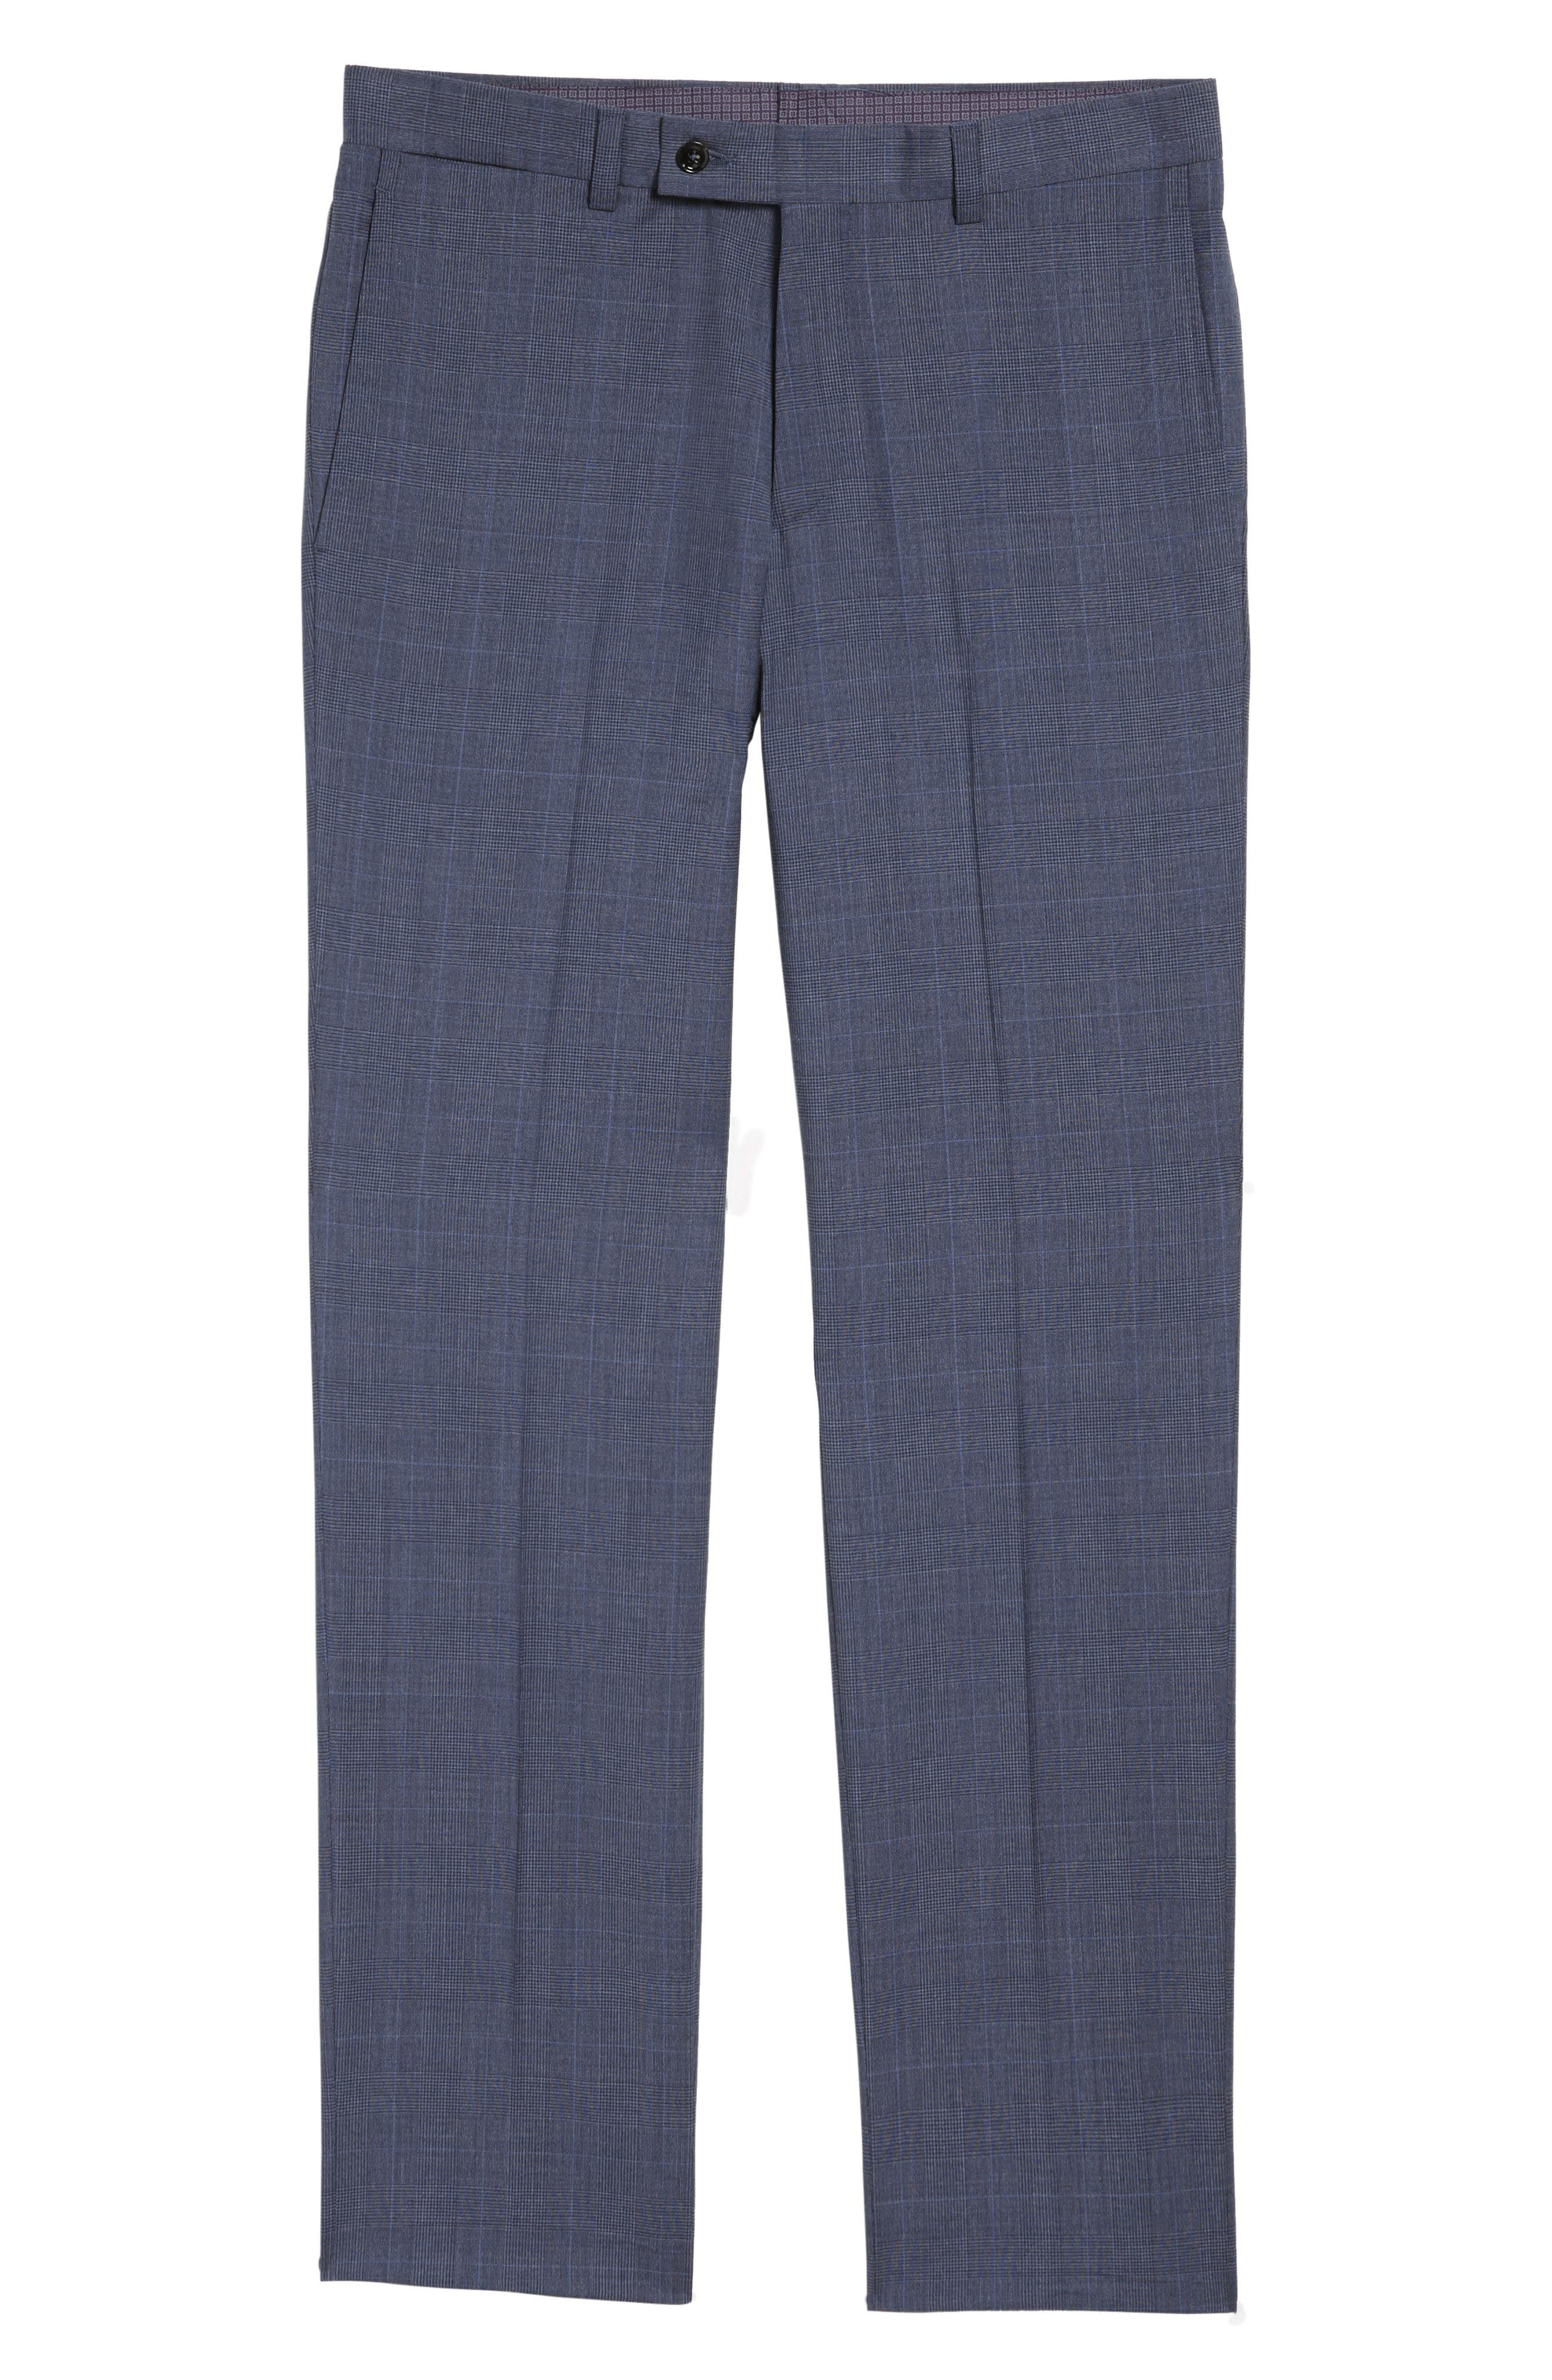 Jefferson Flat Front Wool Trousers,                             Alternate thumbnail 6, color,                             400